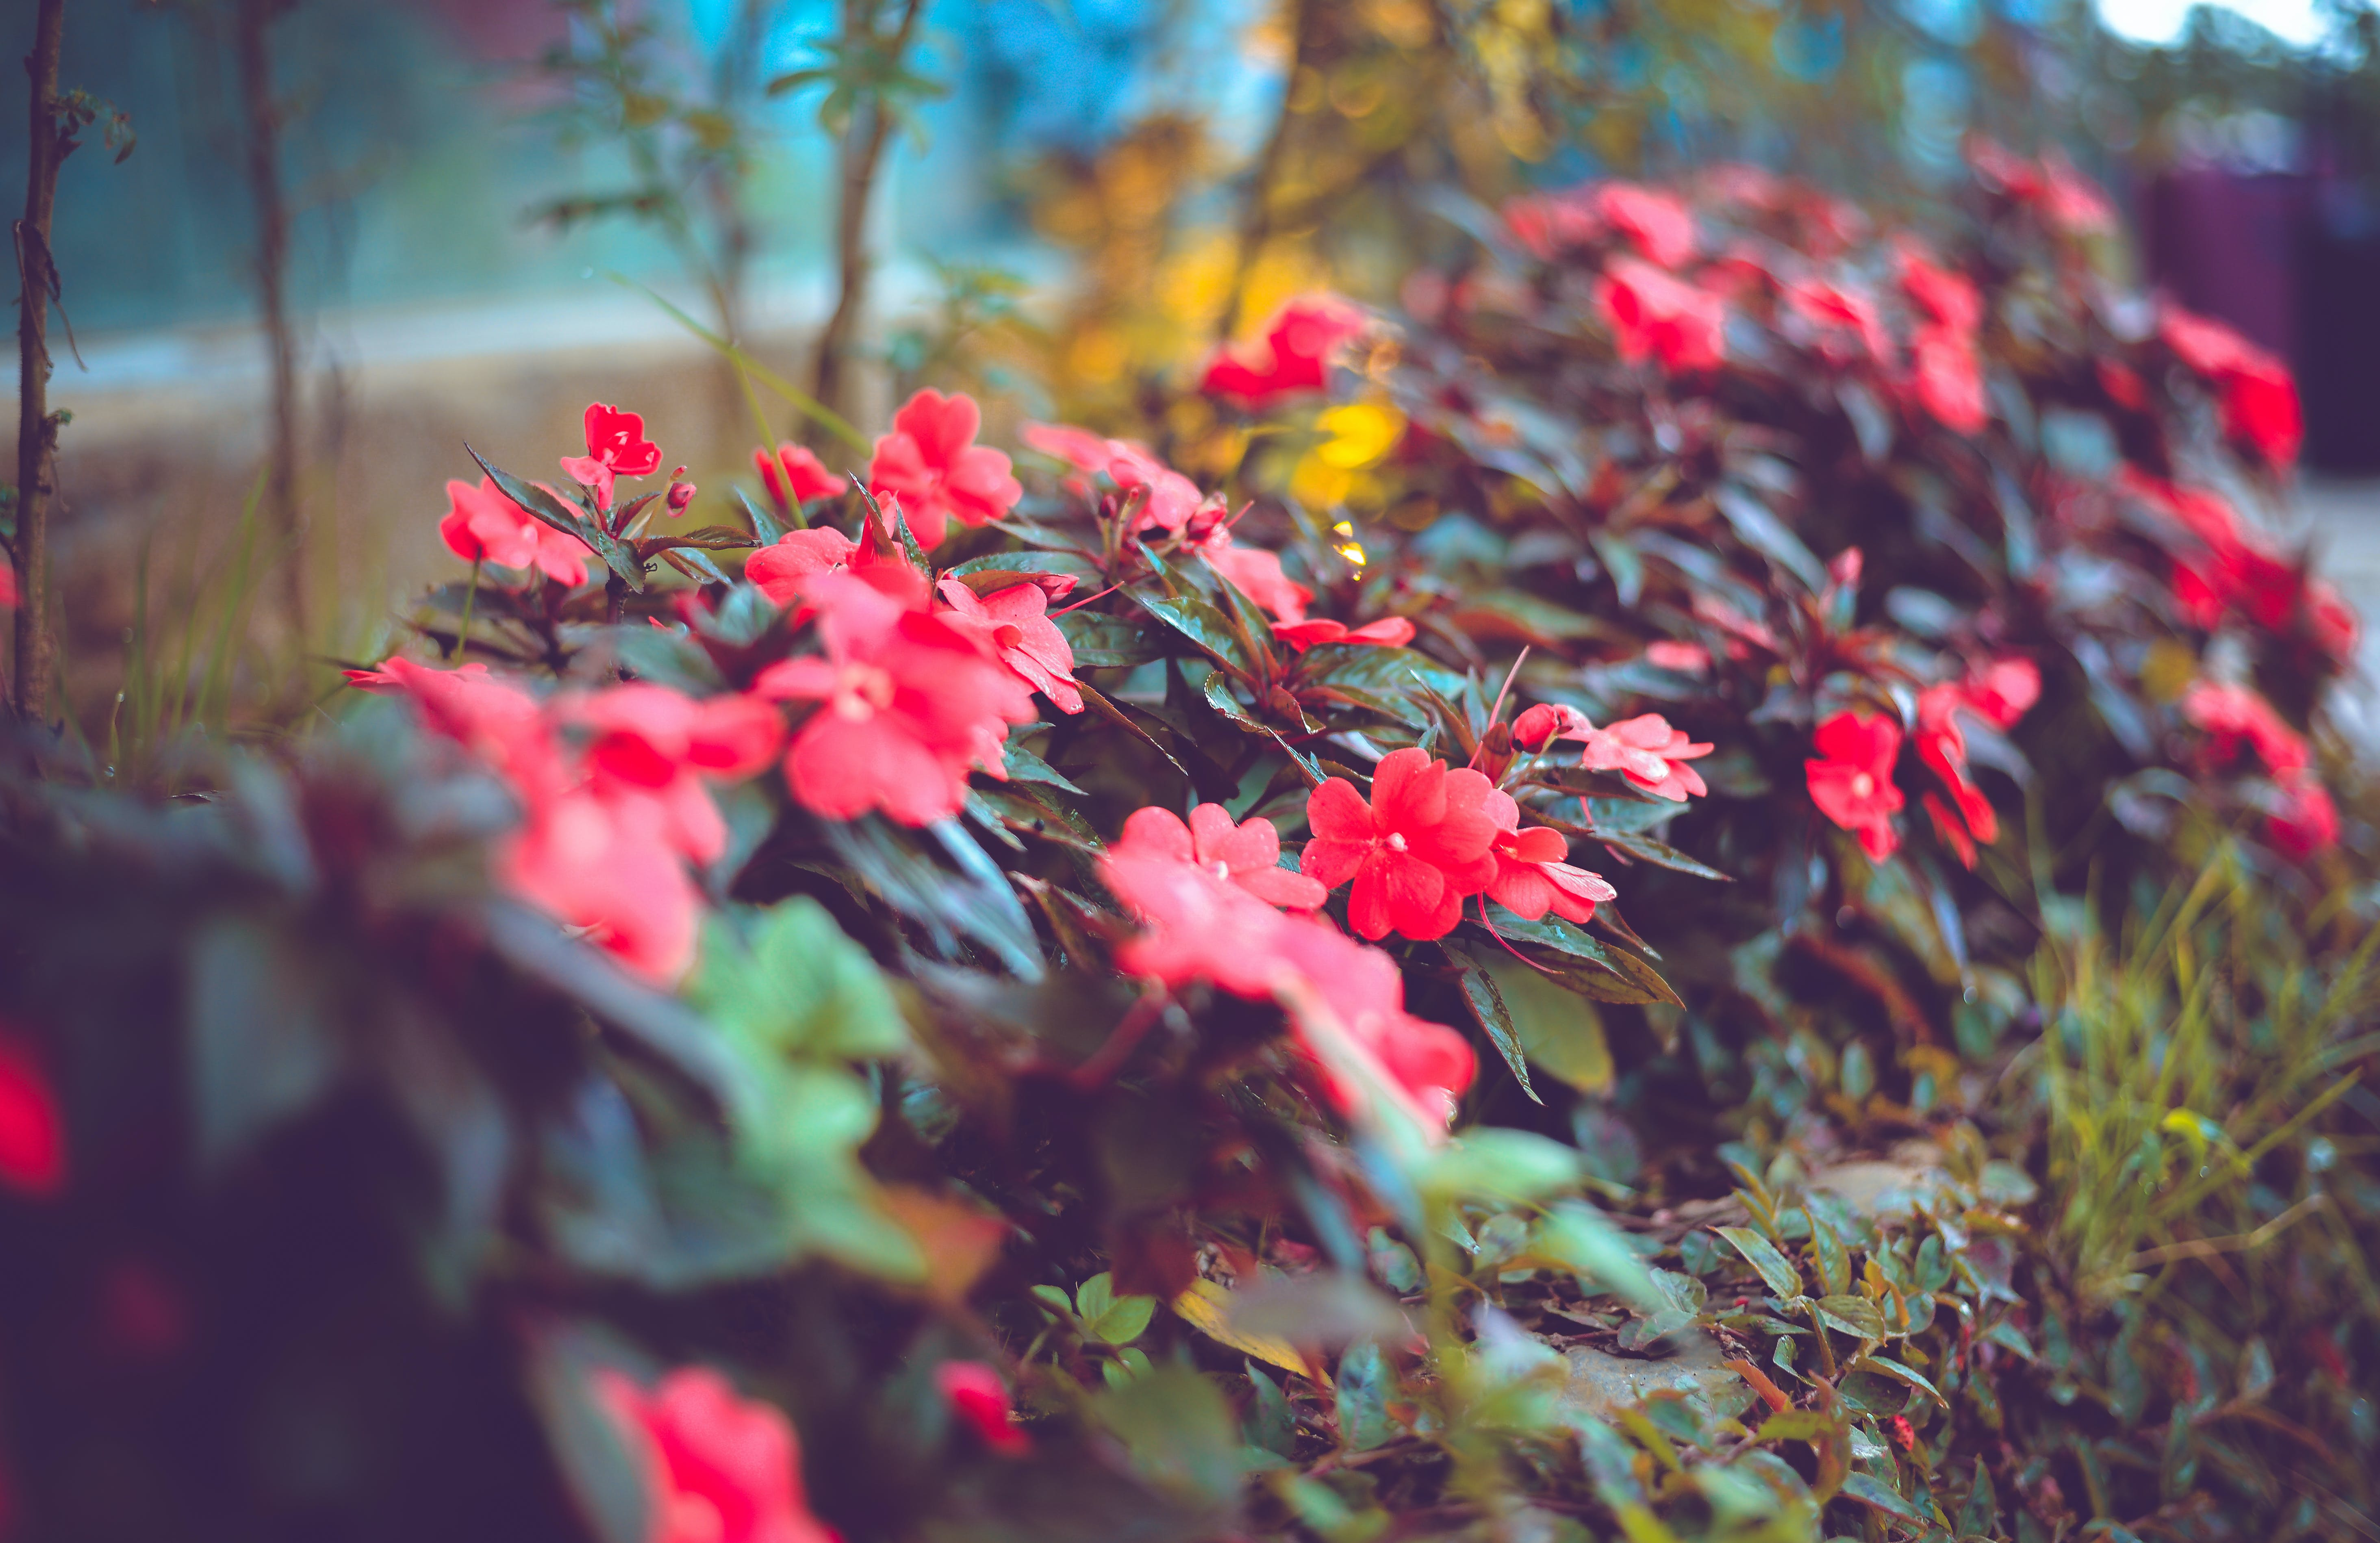 Selective Focus Photography of Red Impatiens Flowers